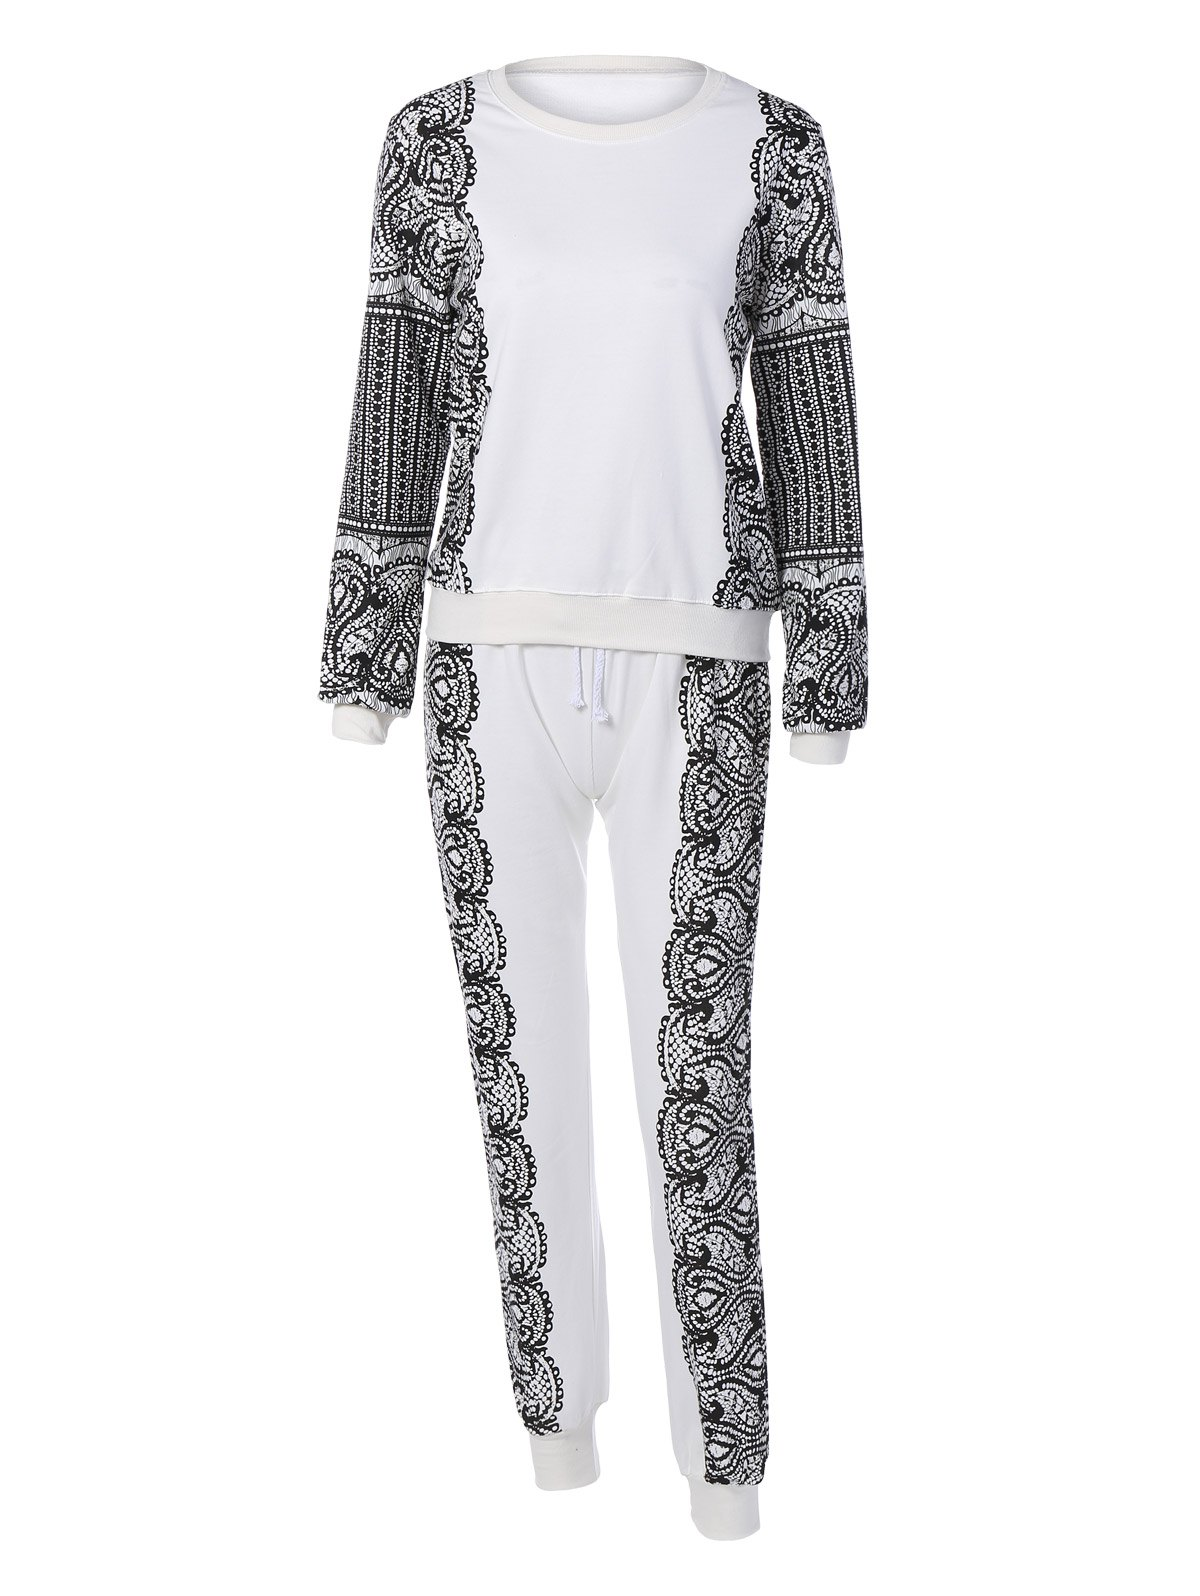 Sports Printed Sweatshirt and Drawstring PantsClothes<br><br><br>Size: L<br>Color: WHITE